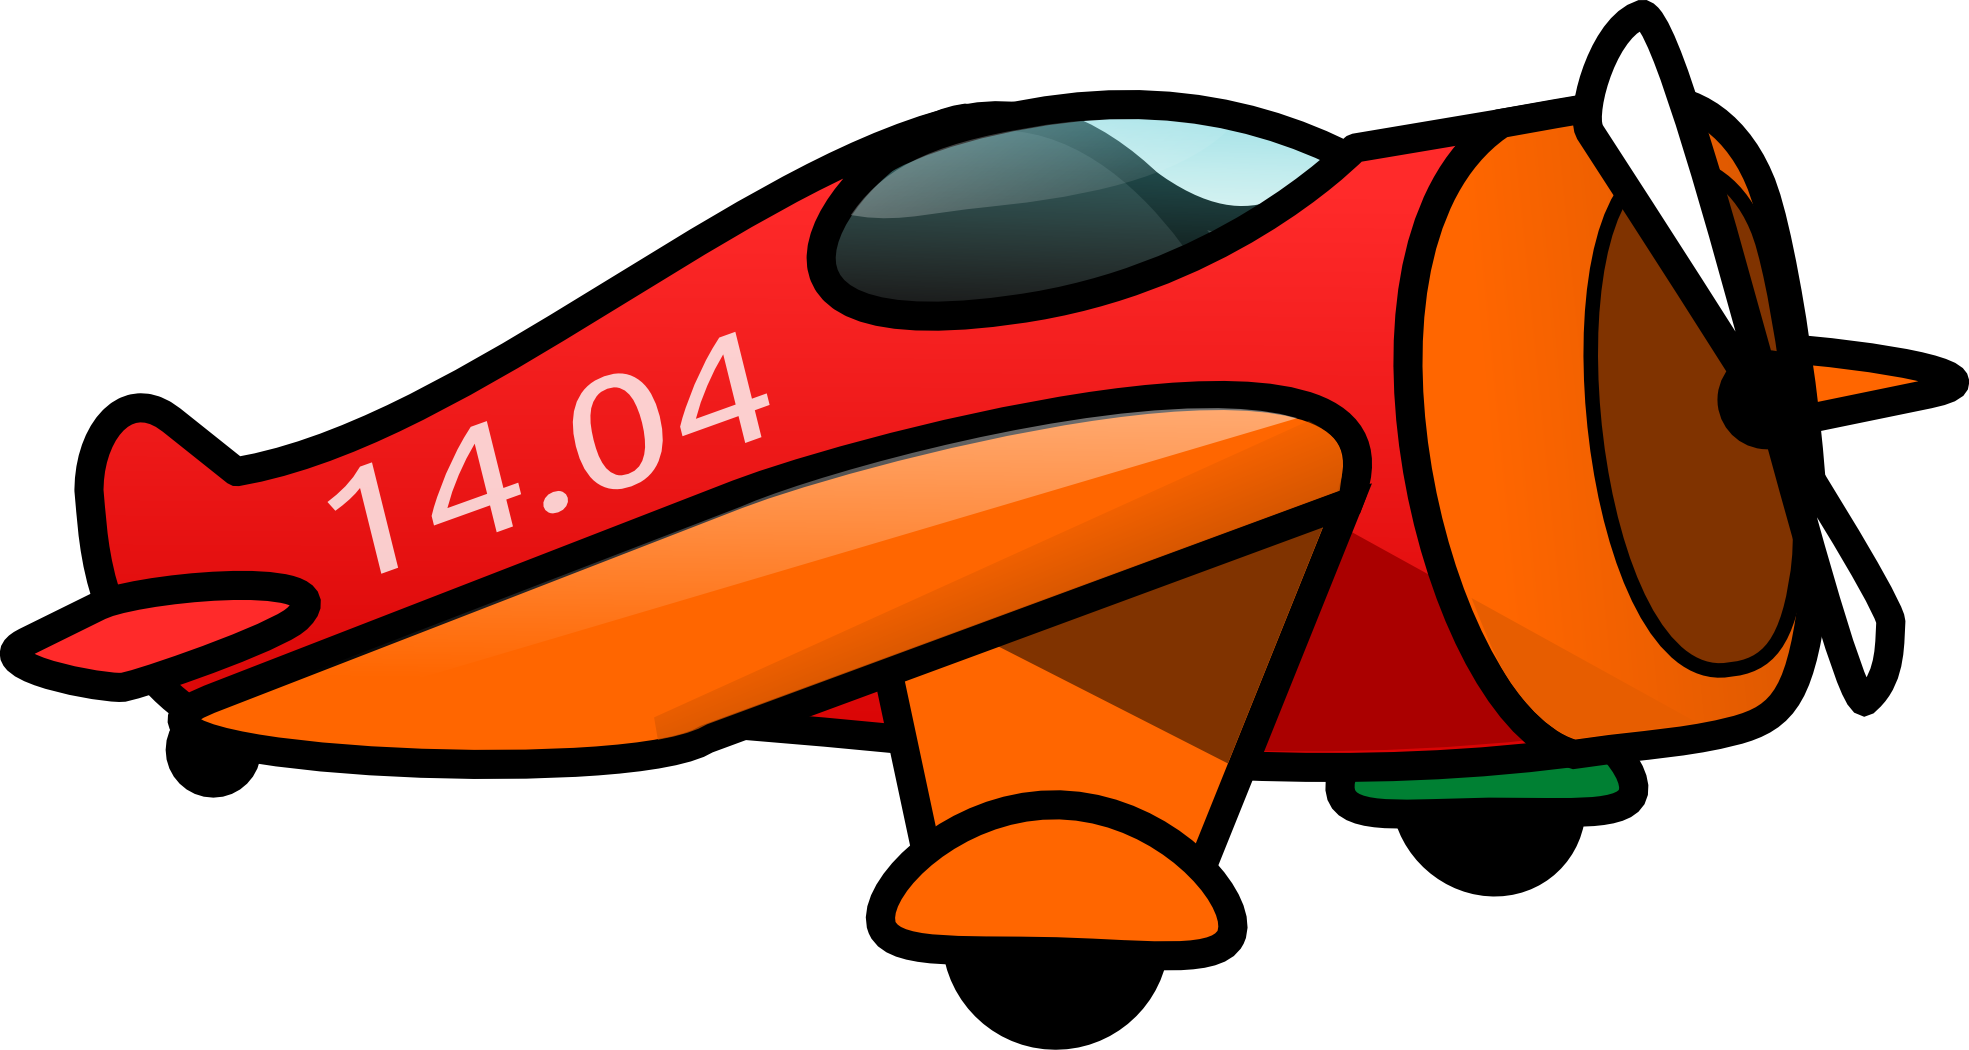 Cartoon airplane png. Clip art planes transprent